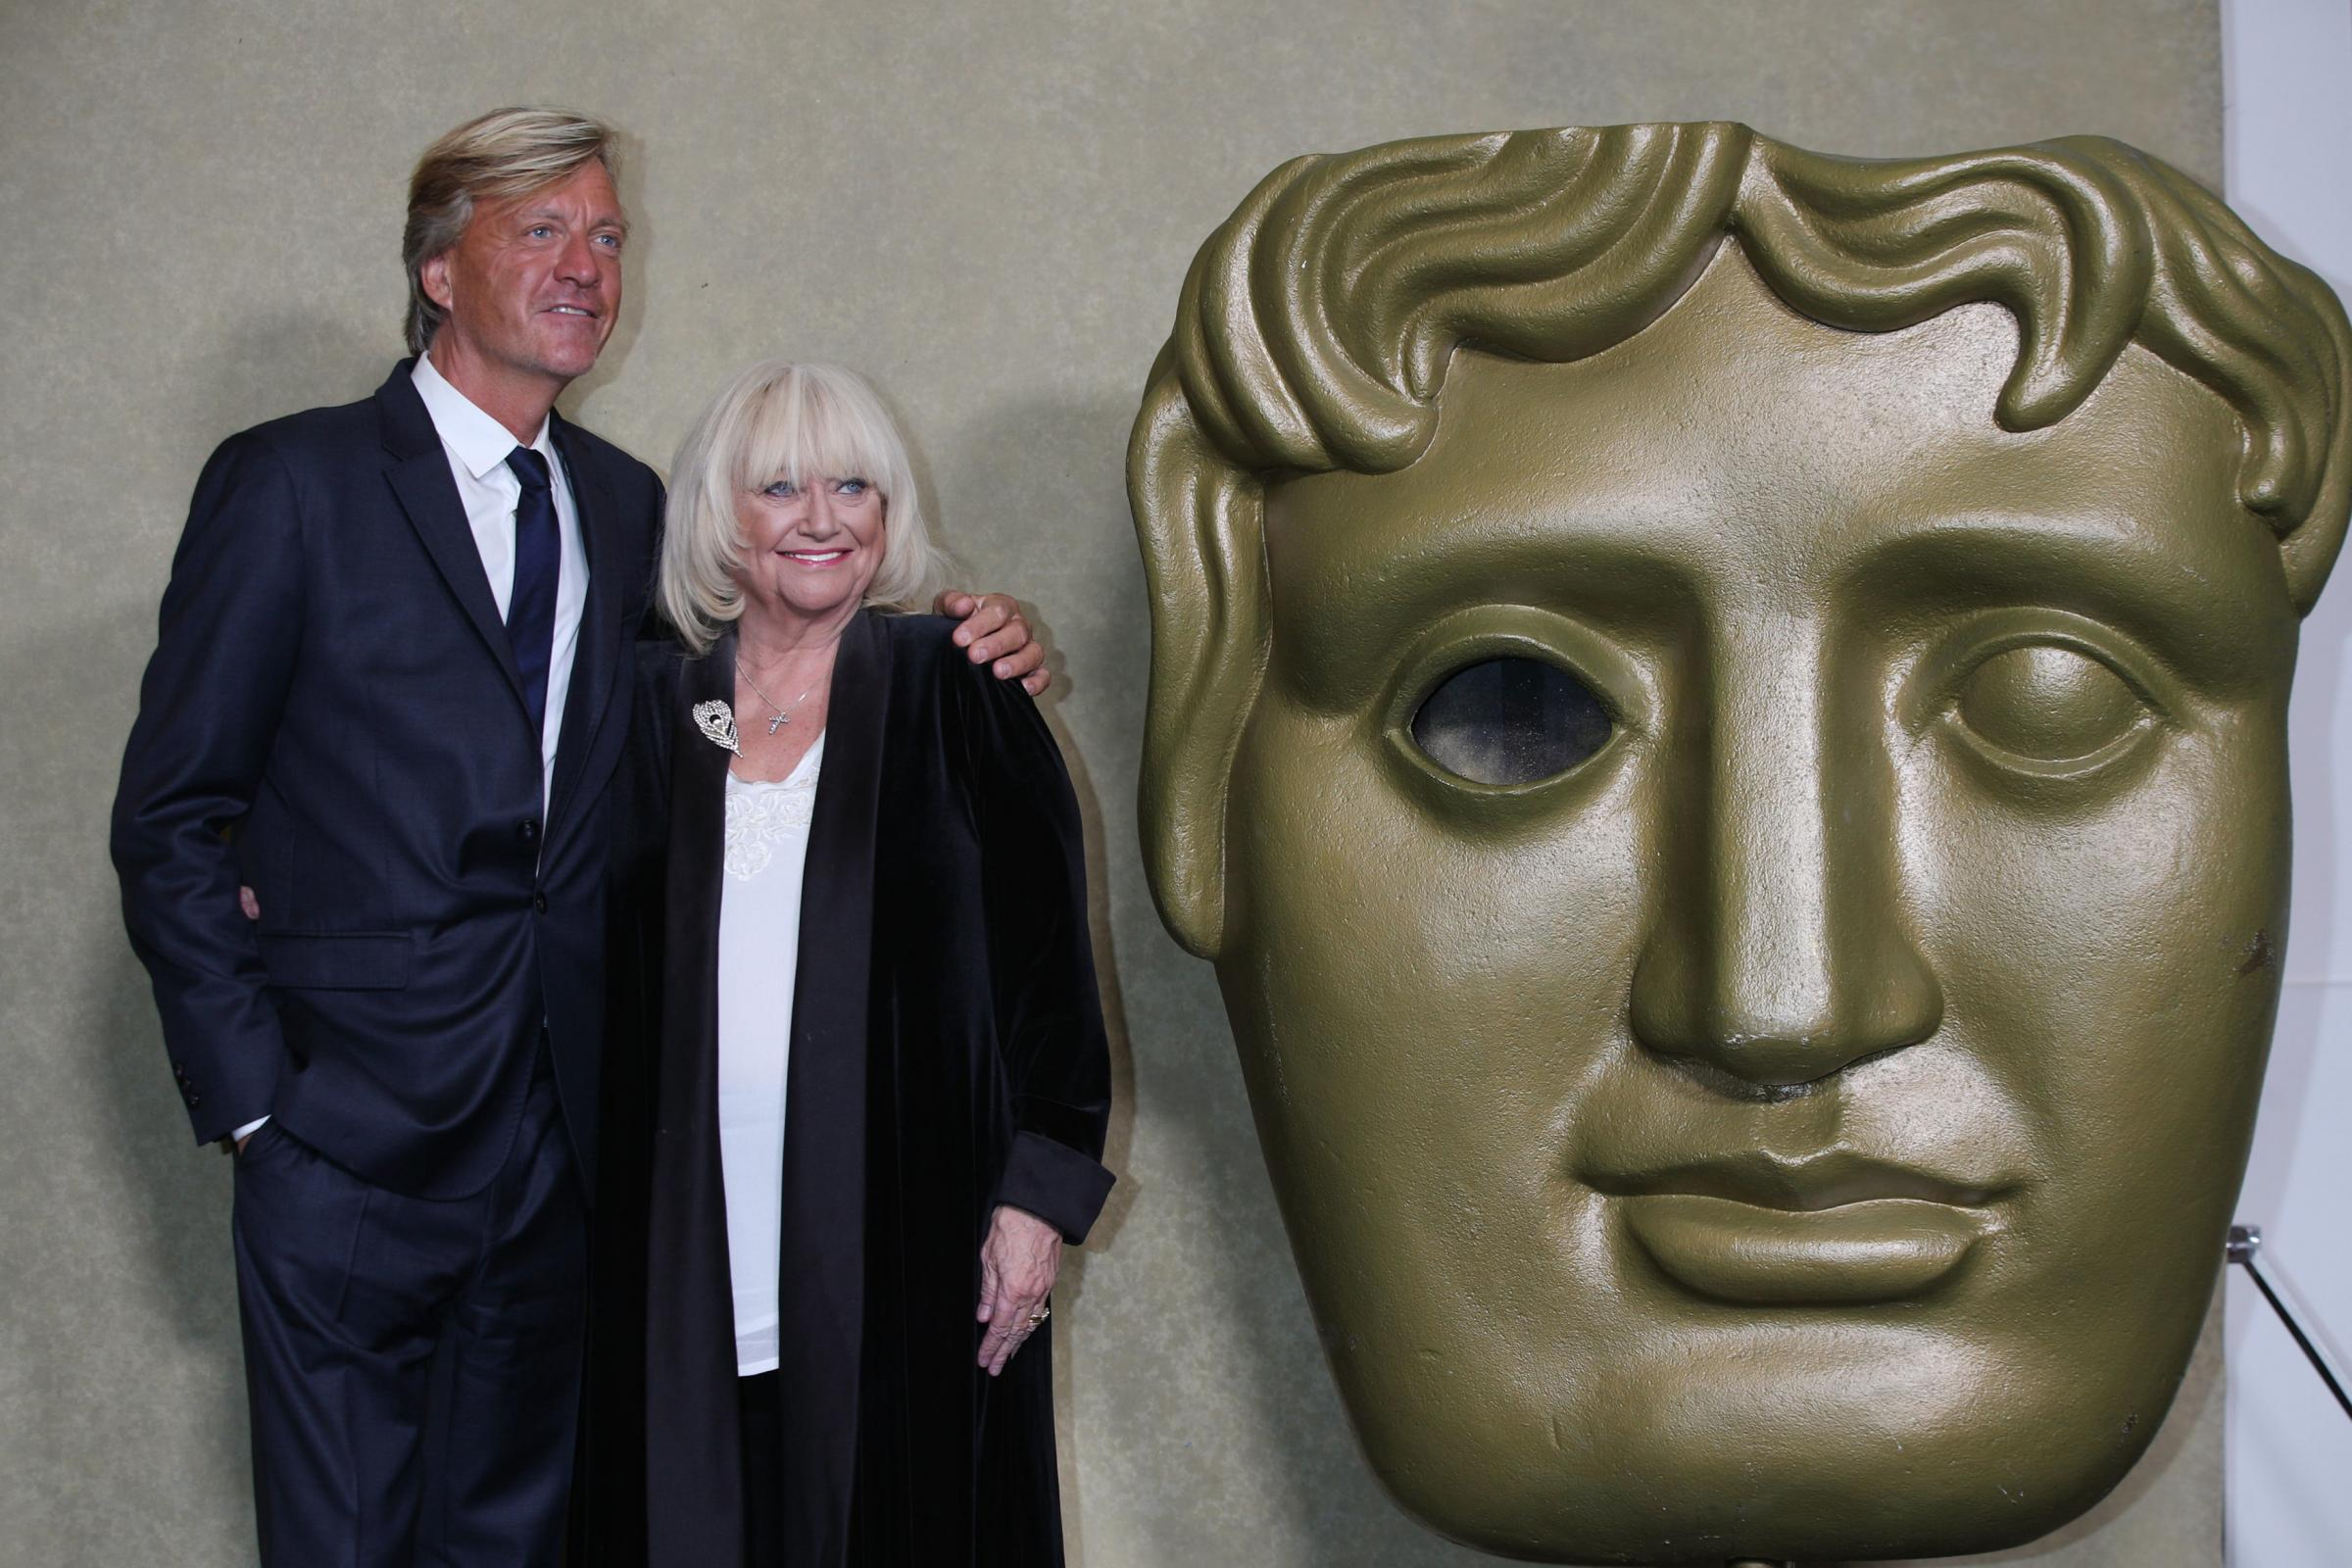 Judy Finnigan opens up on how paparazzi pressure led her to quit TV